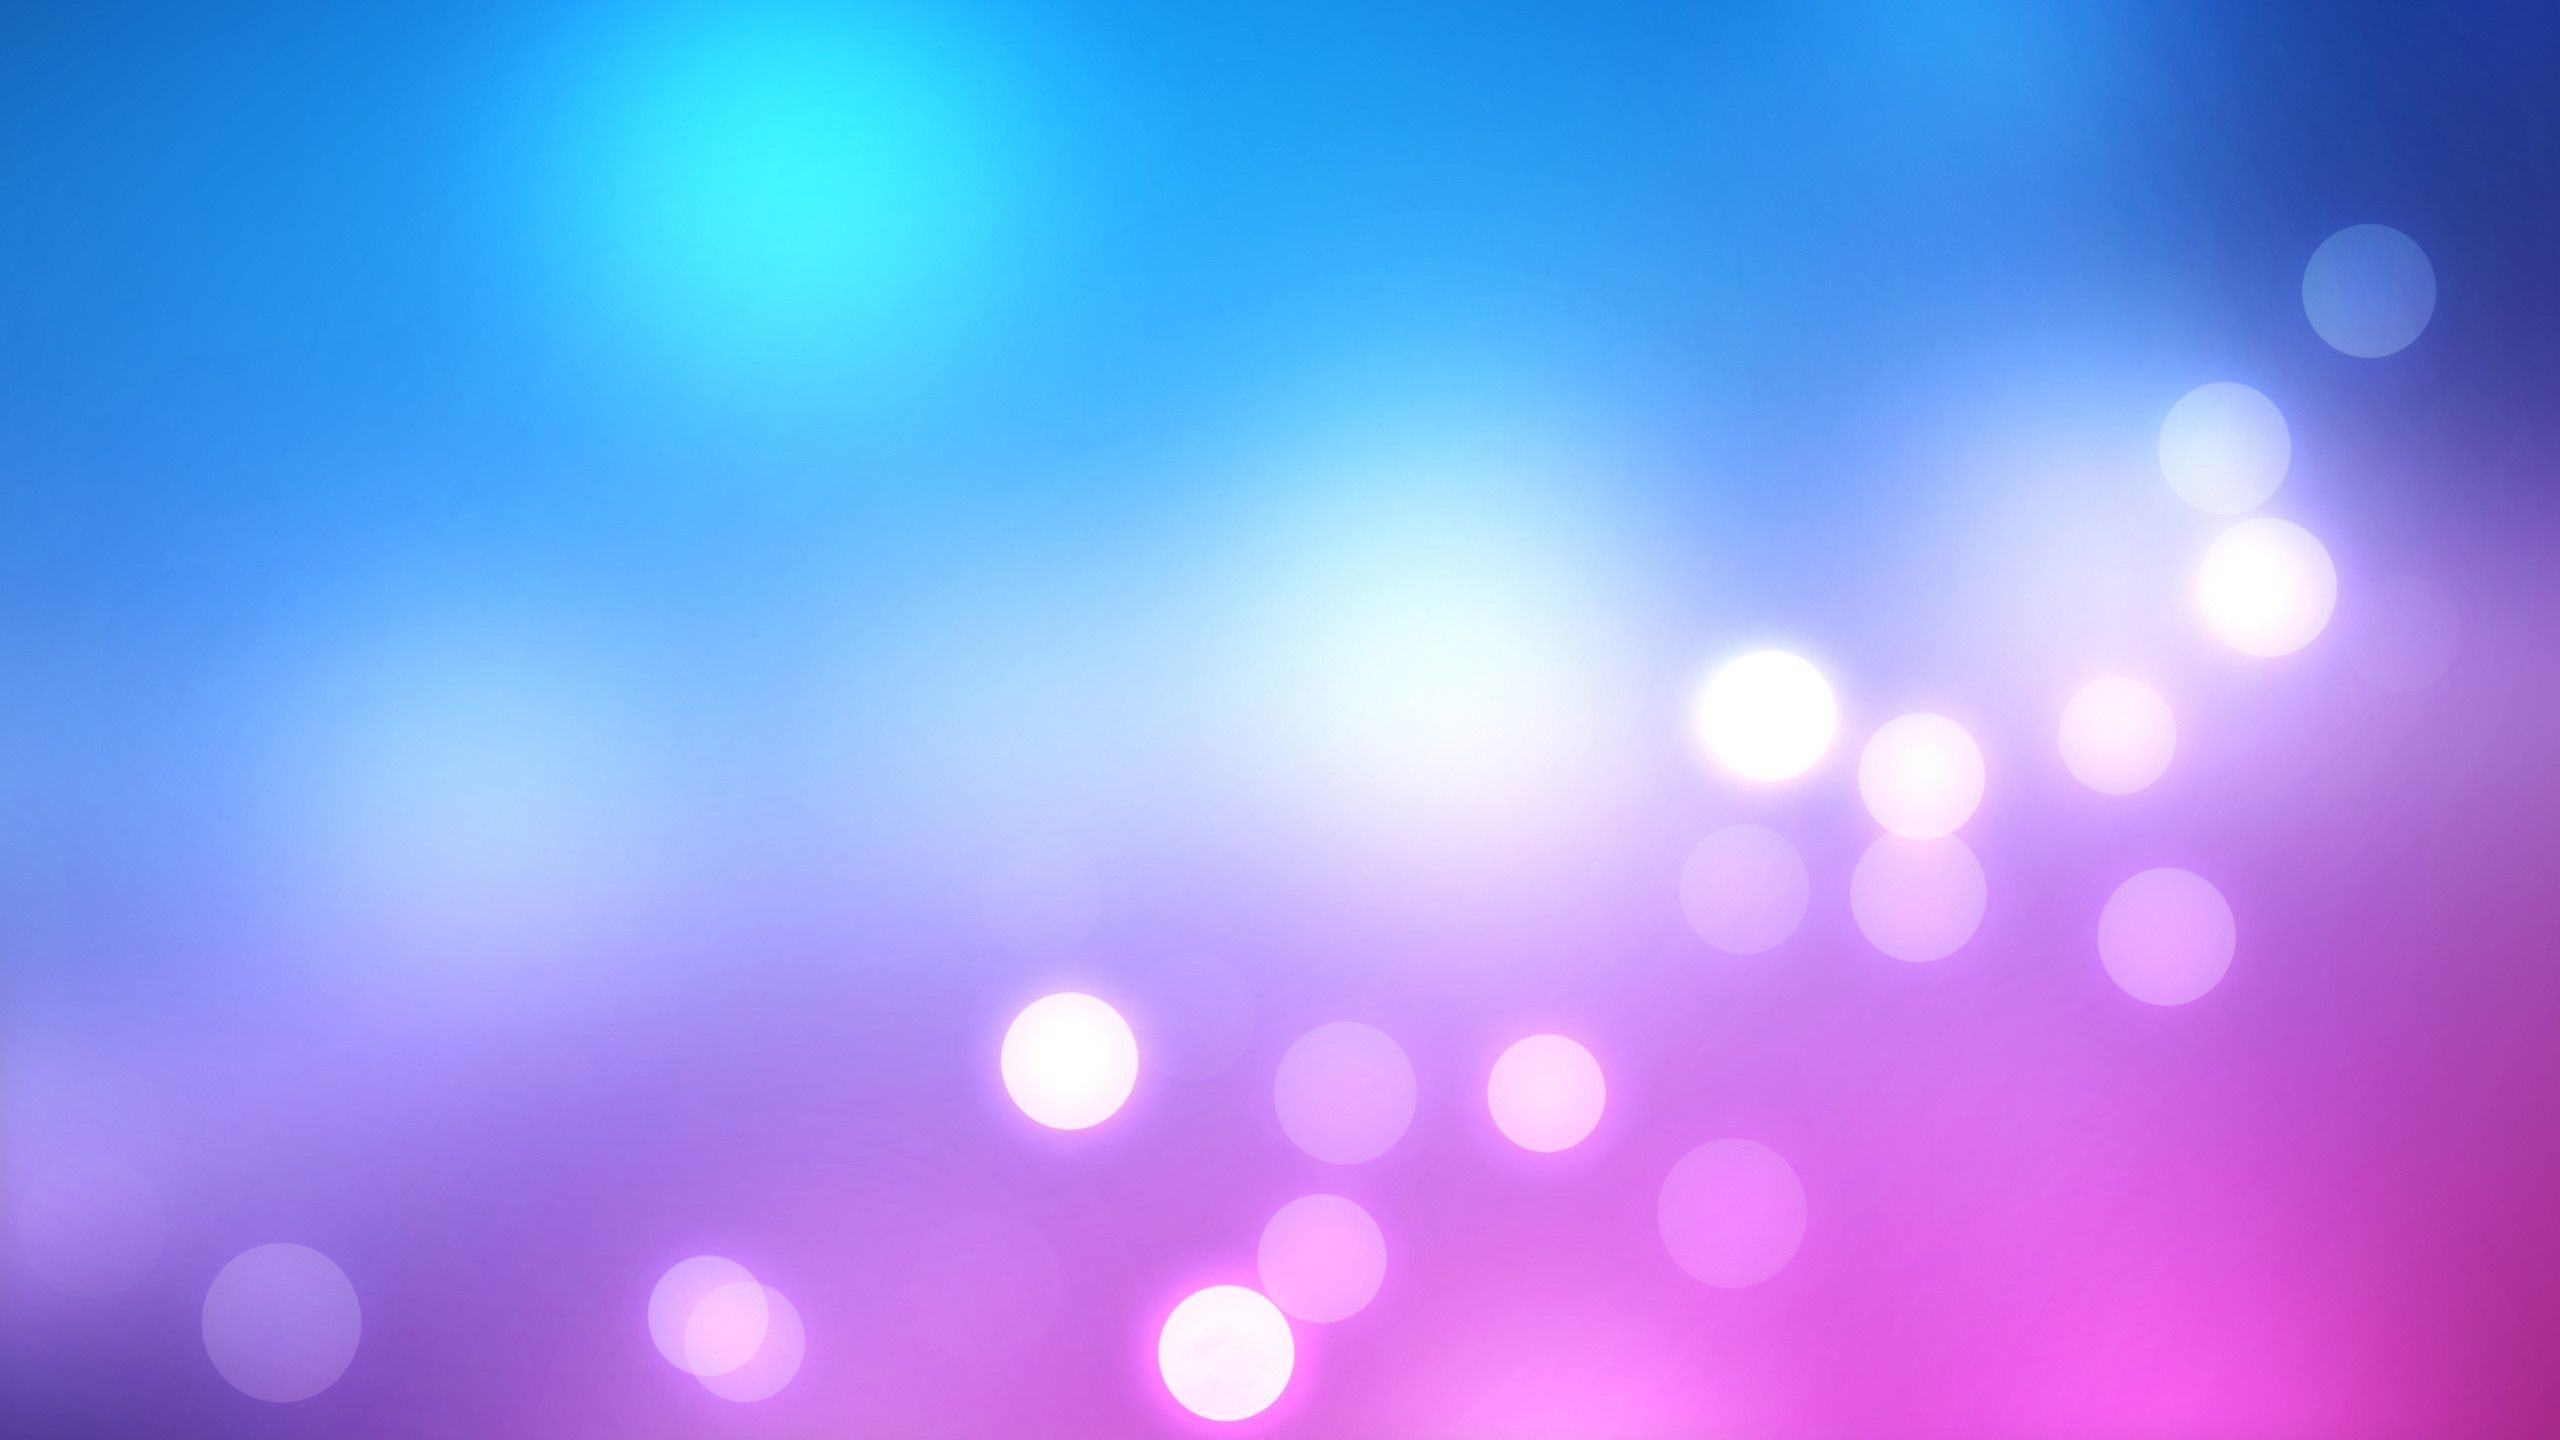 Wallpapers For > Light Blue And Purple Backgrounds